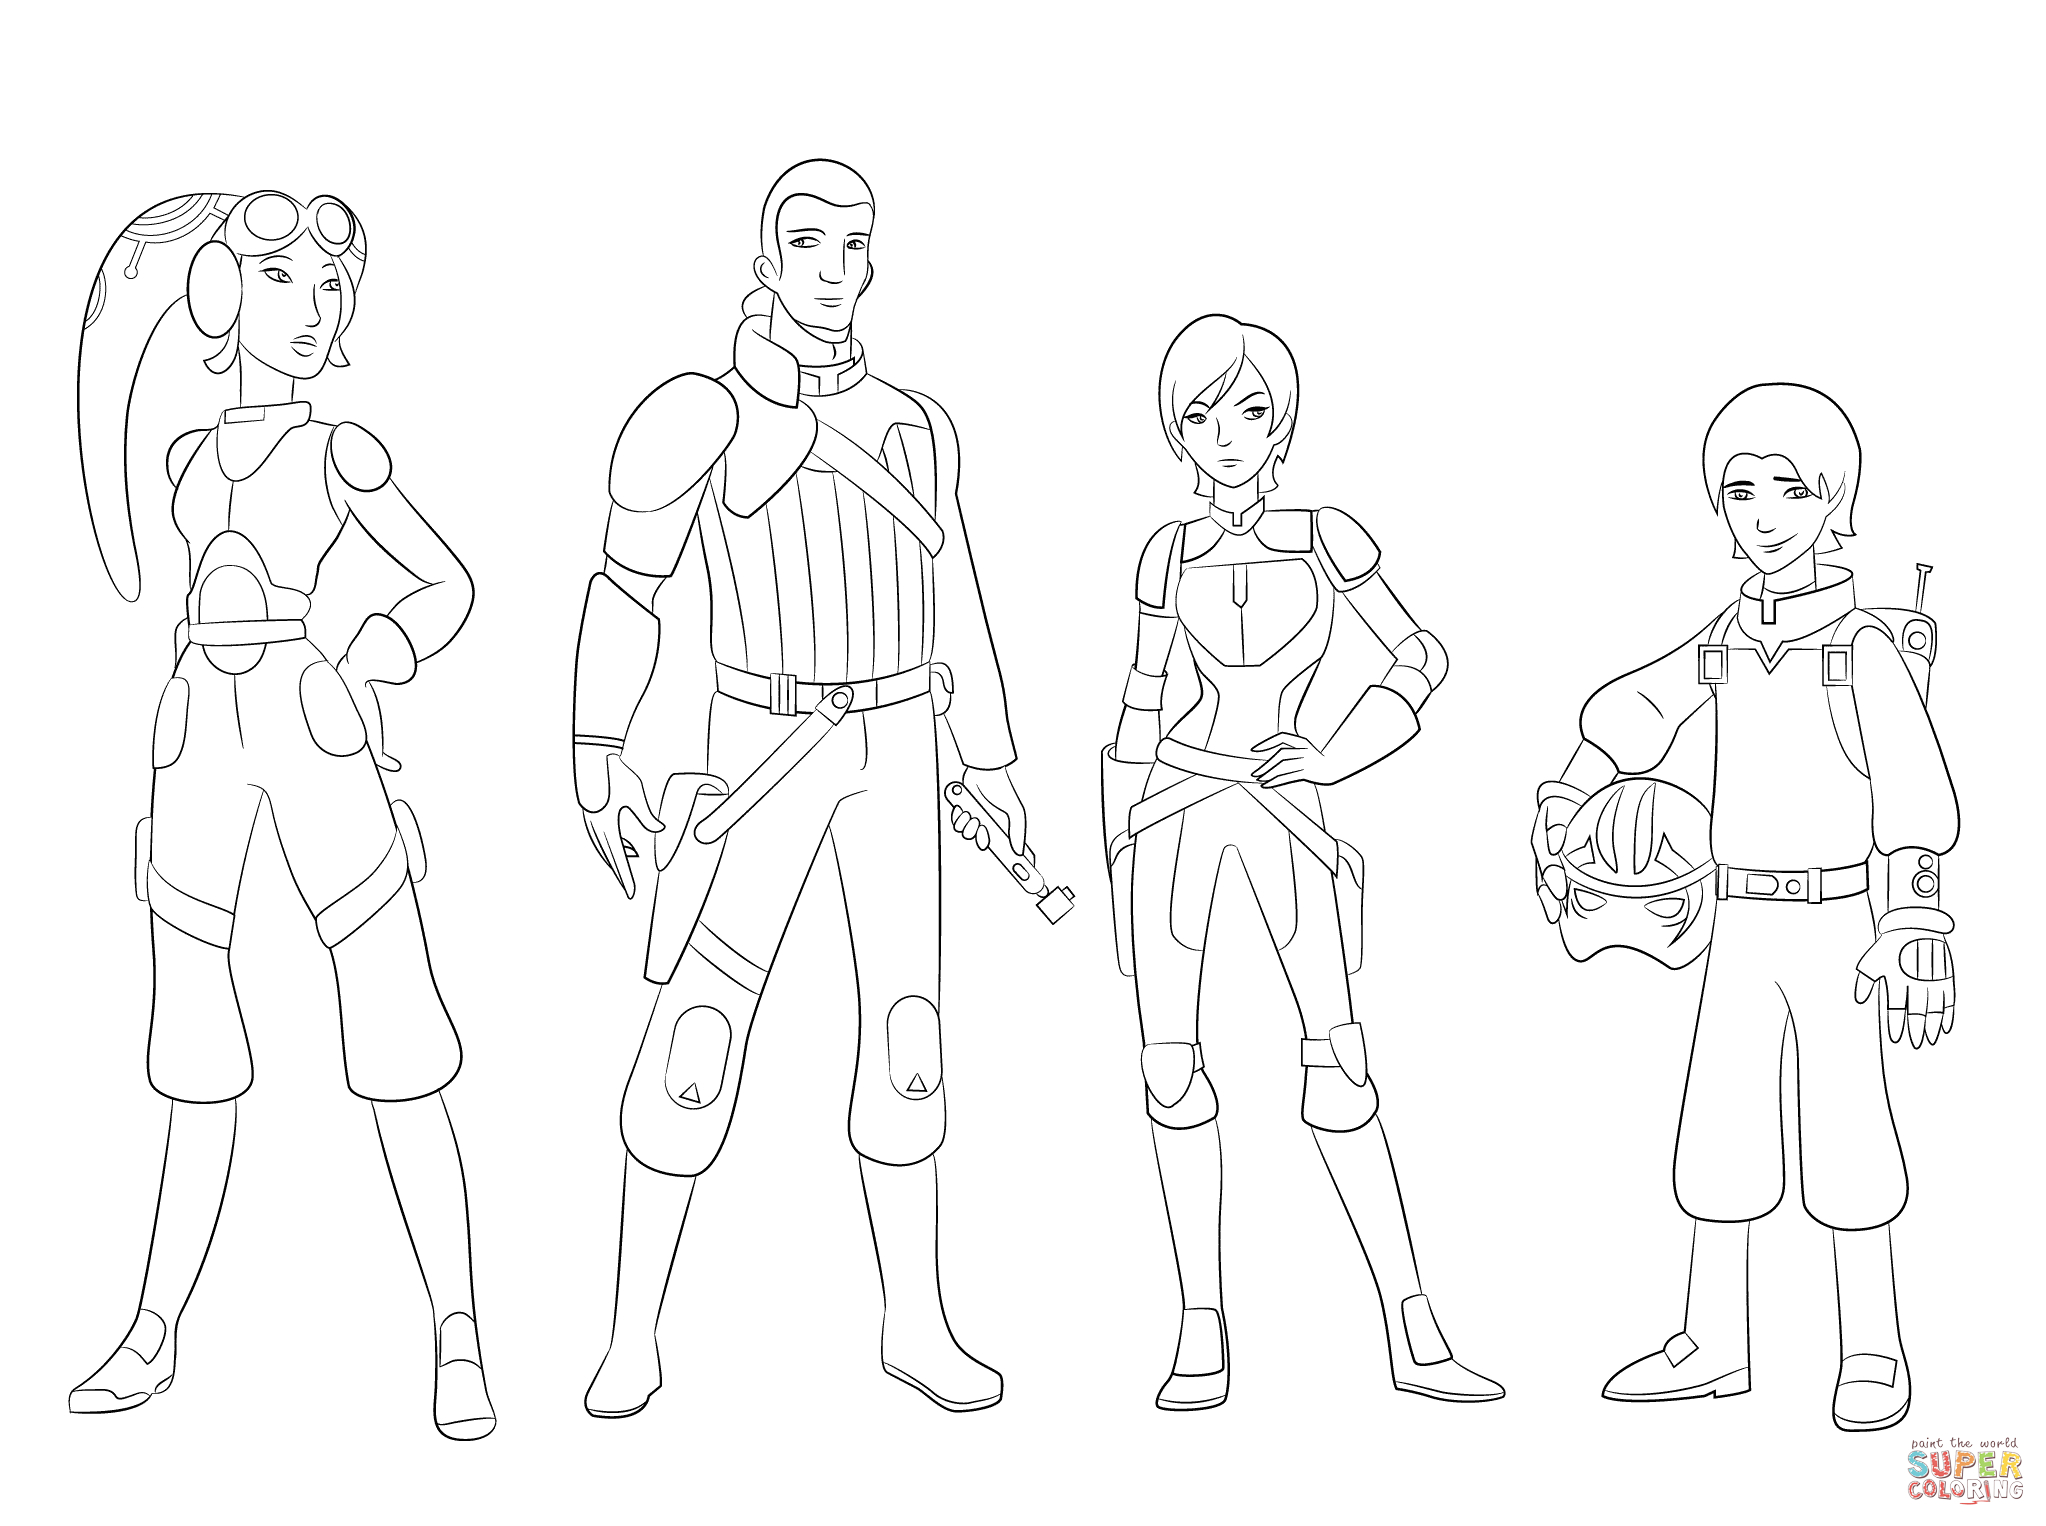 Star Wars Rebels Characters Coloring Page Download Of Unique Star Wars Cartoon Characters Coloring Pages Collection to Print